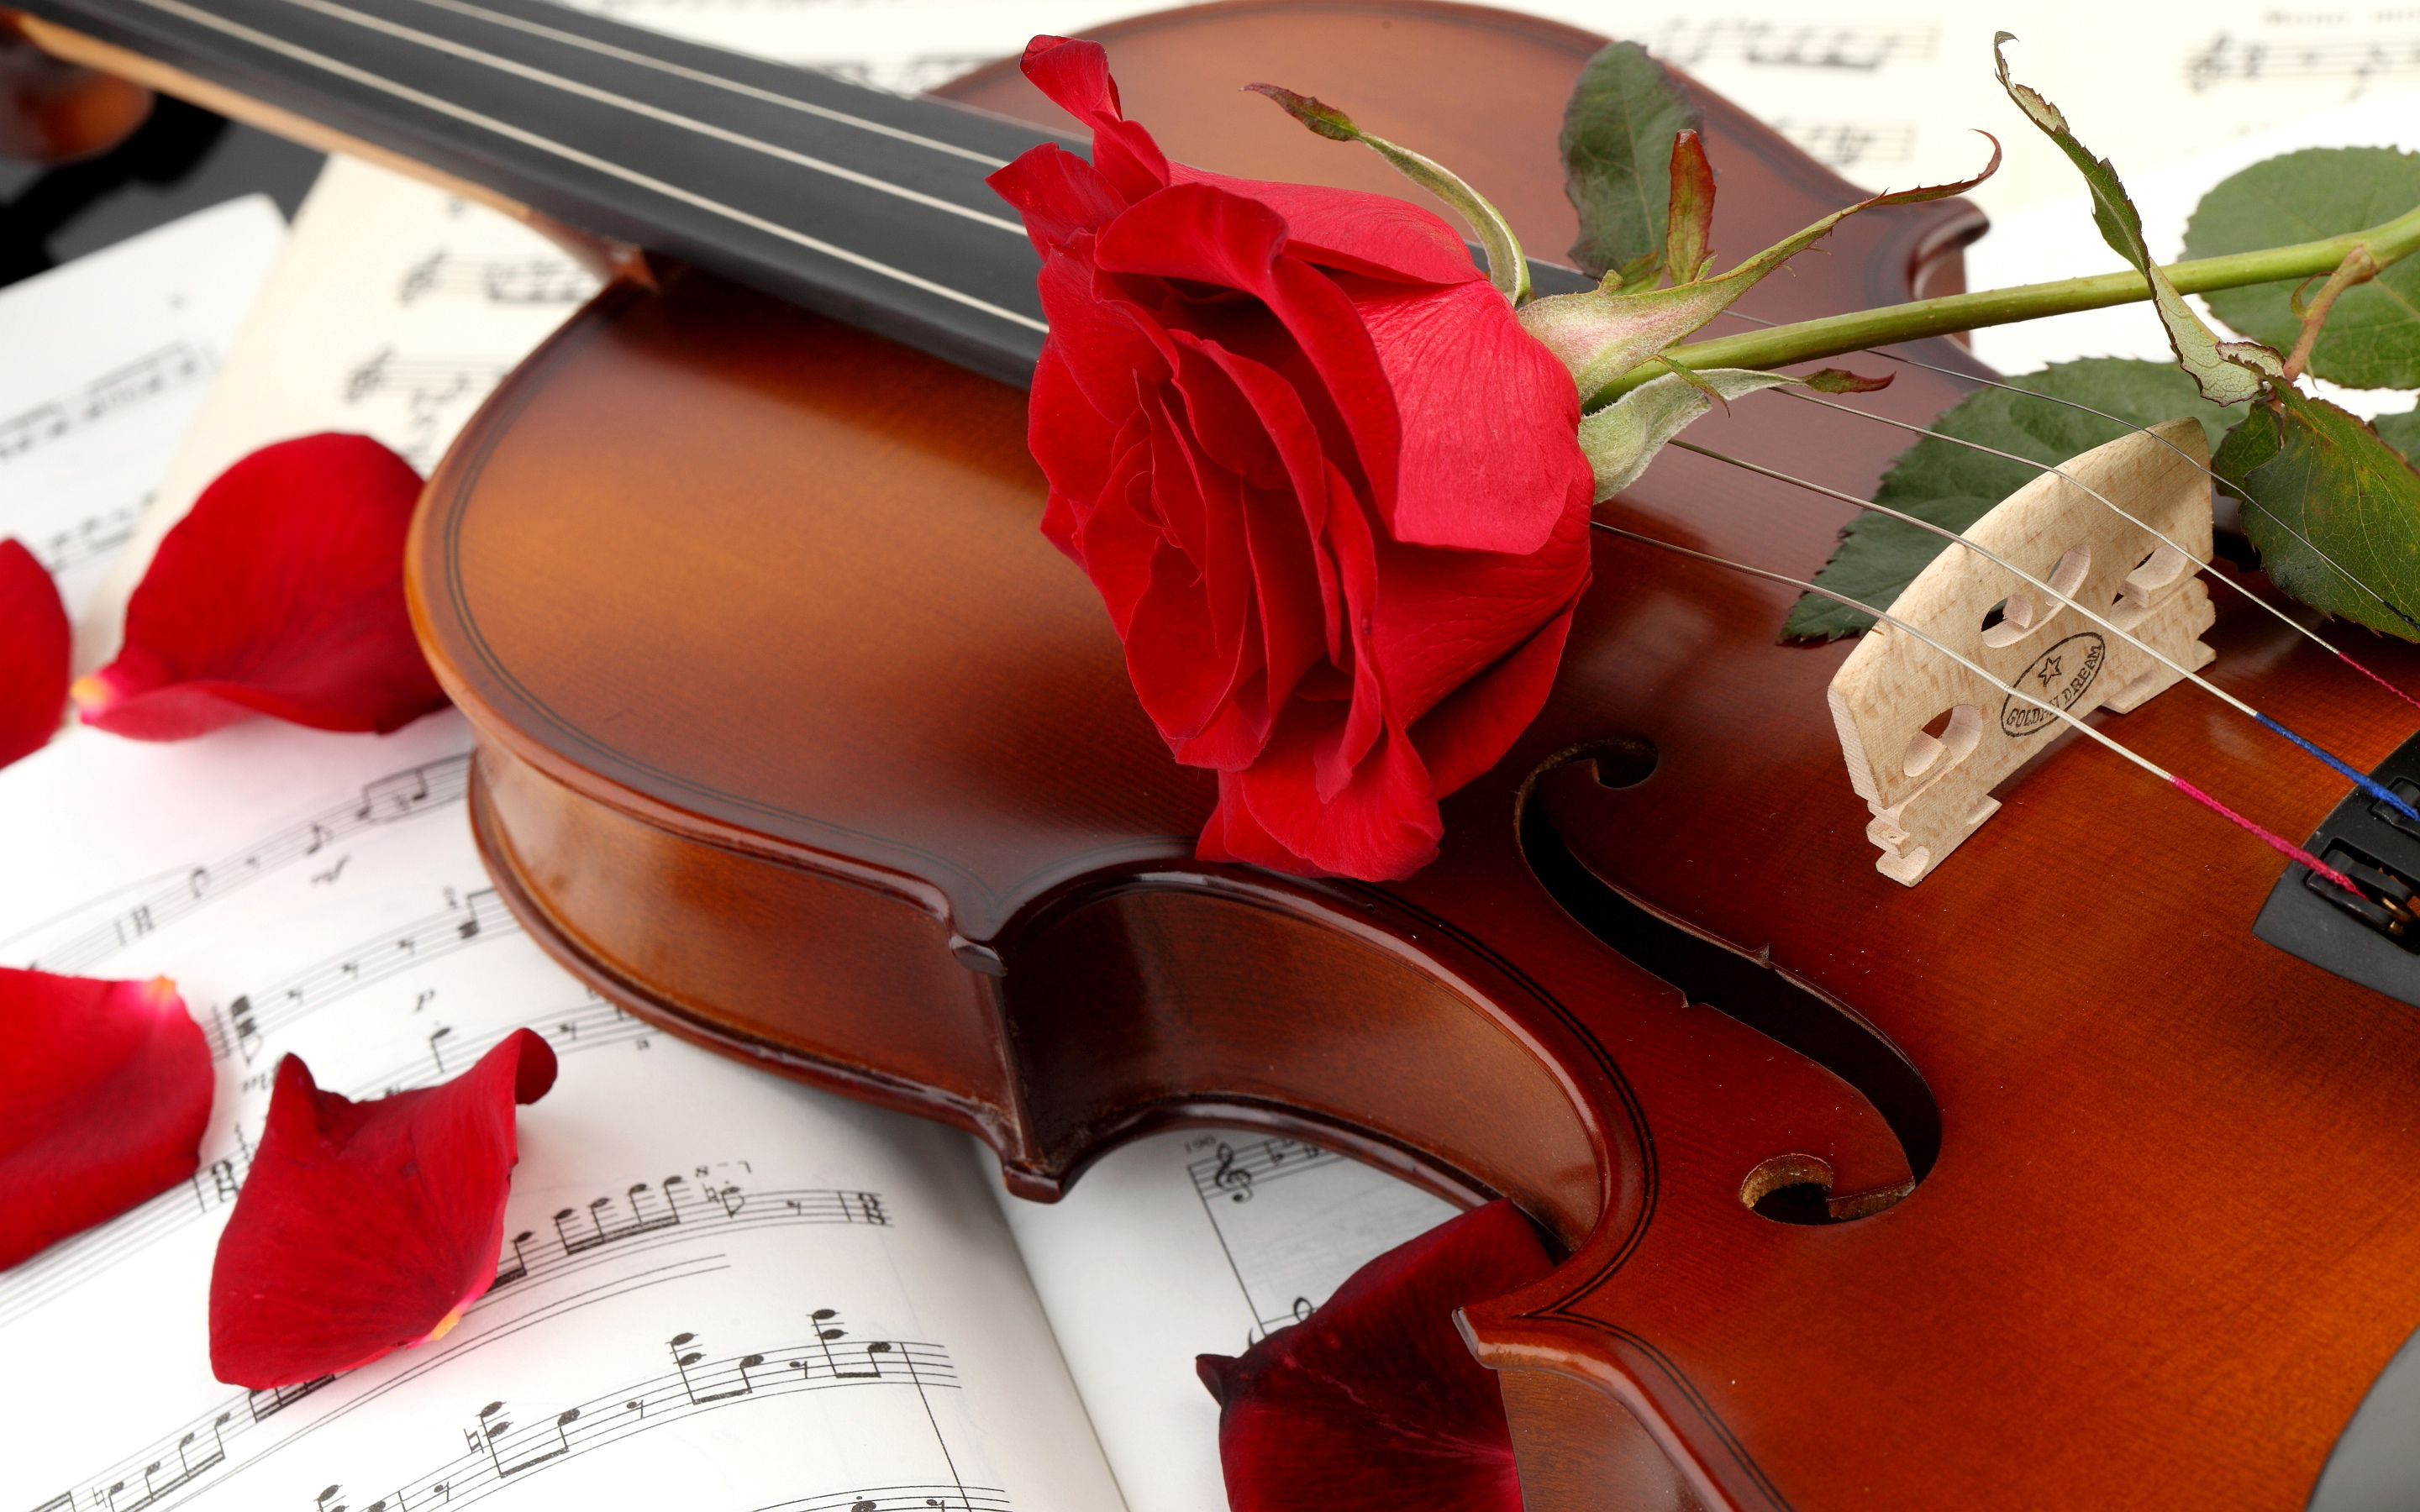 Music violin red rose